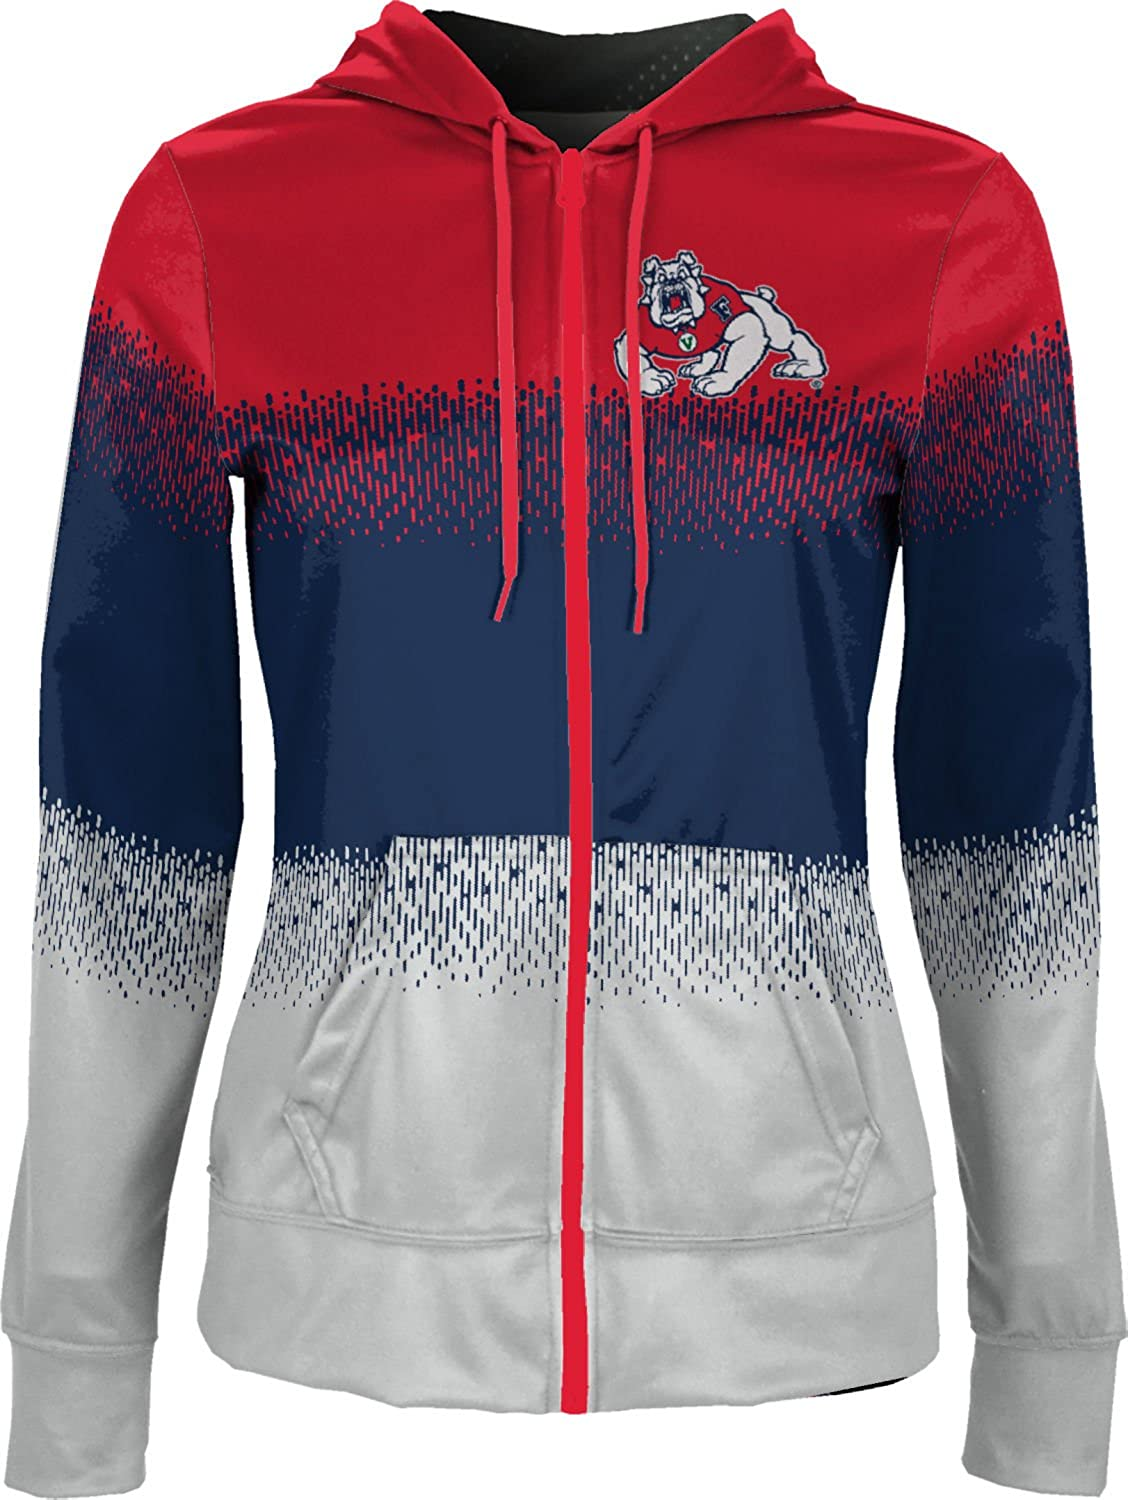 Drip ProSphere Fresno State University Girls Zipper Hoodie School Spirit Sweatshirt